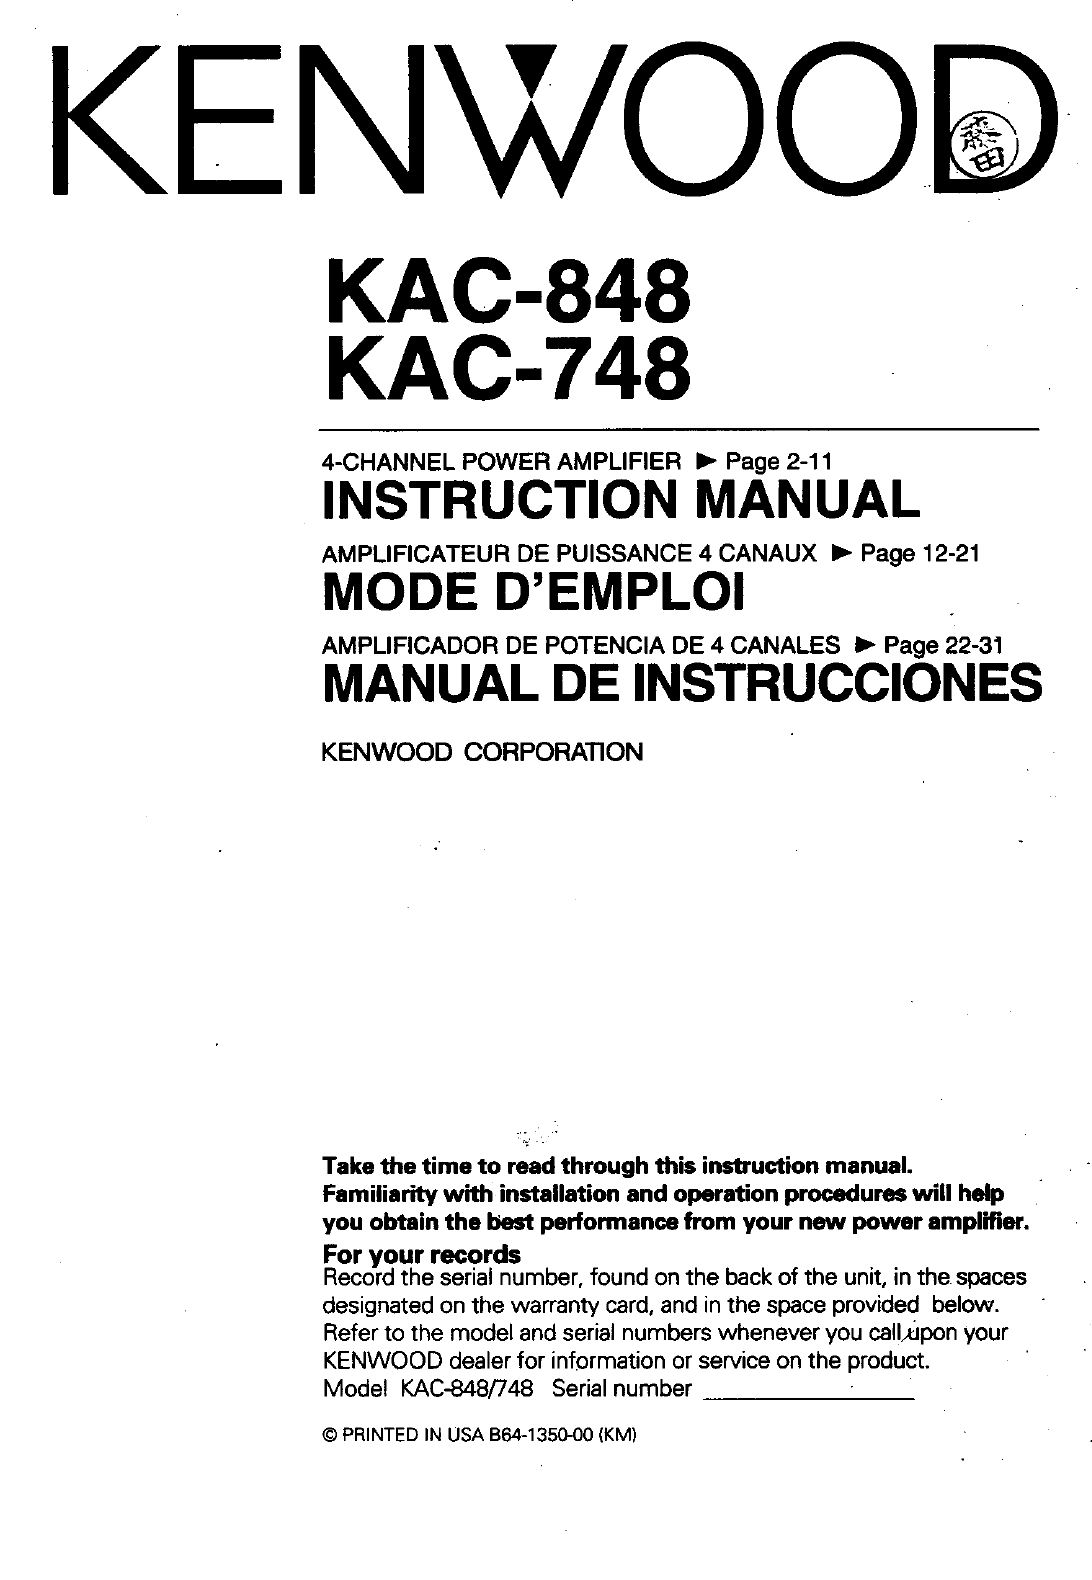 c00521f8 40ba 14a4 9156 d04f91b14e89 bg1 kenwood stereo amplifier kac 748 user guide manualsonline com kenwood kac 7201 wiring diagram at alyssarenee.co